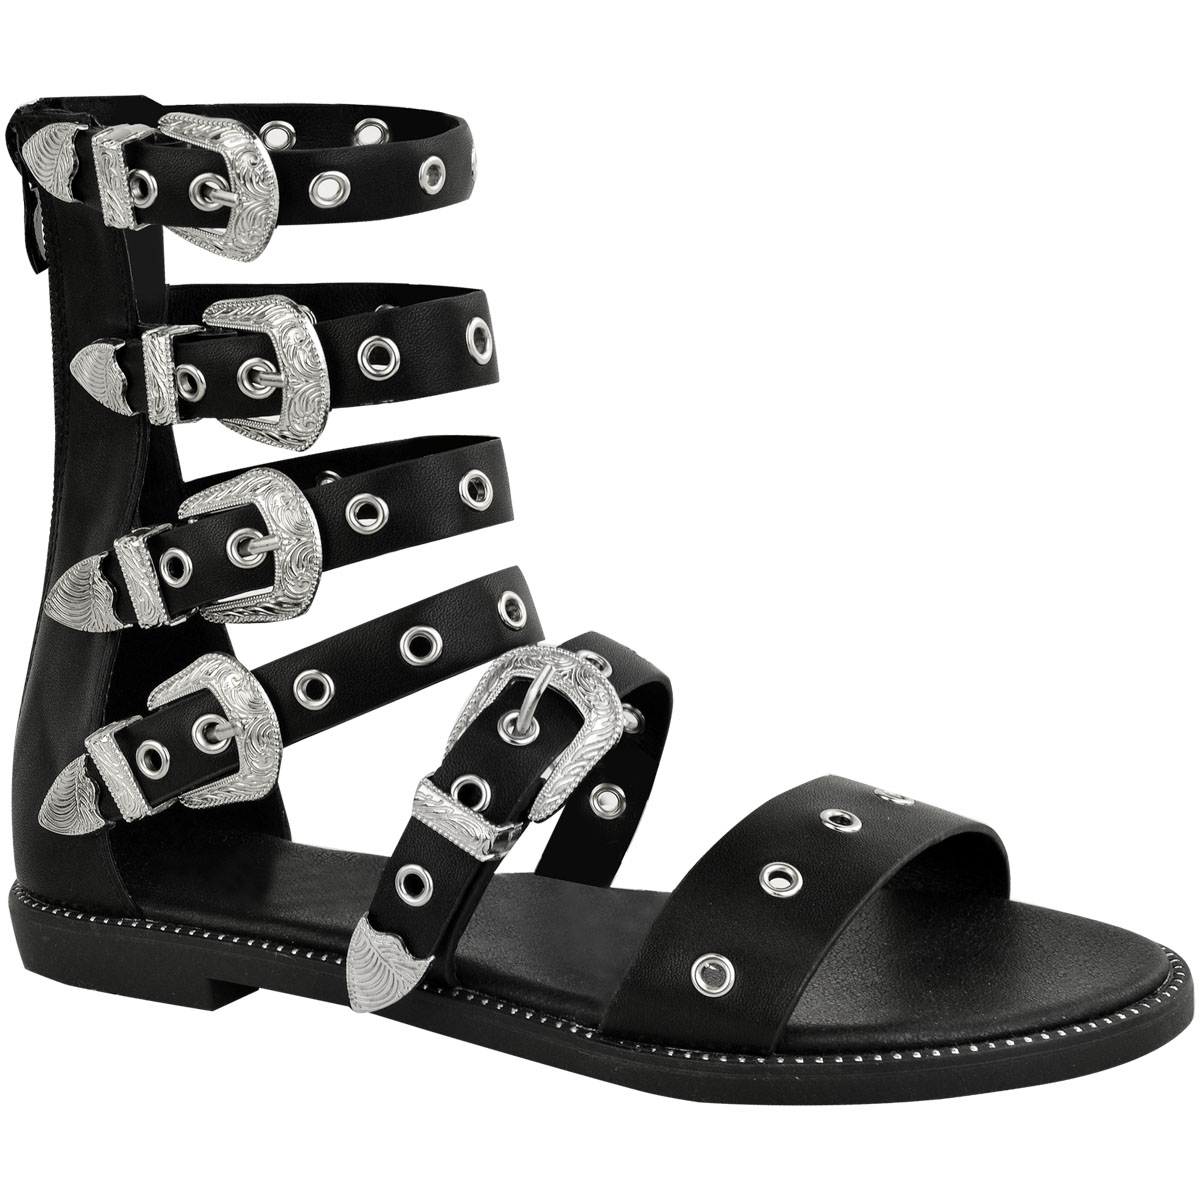 Sandals Buckles Ladies Strappy Womens Goth New Gladiator Flat Biker TF1KcJ3l